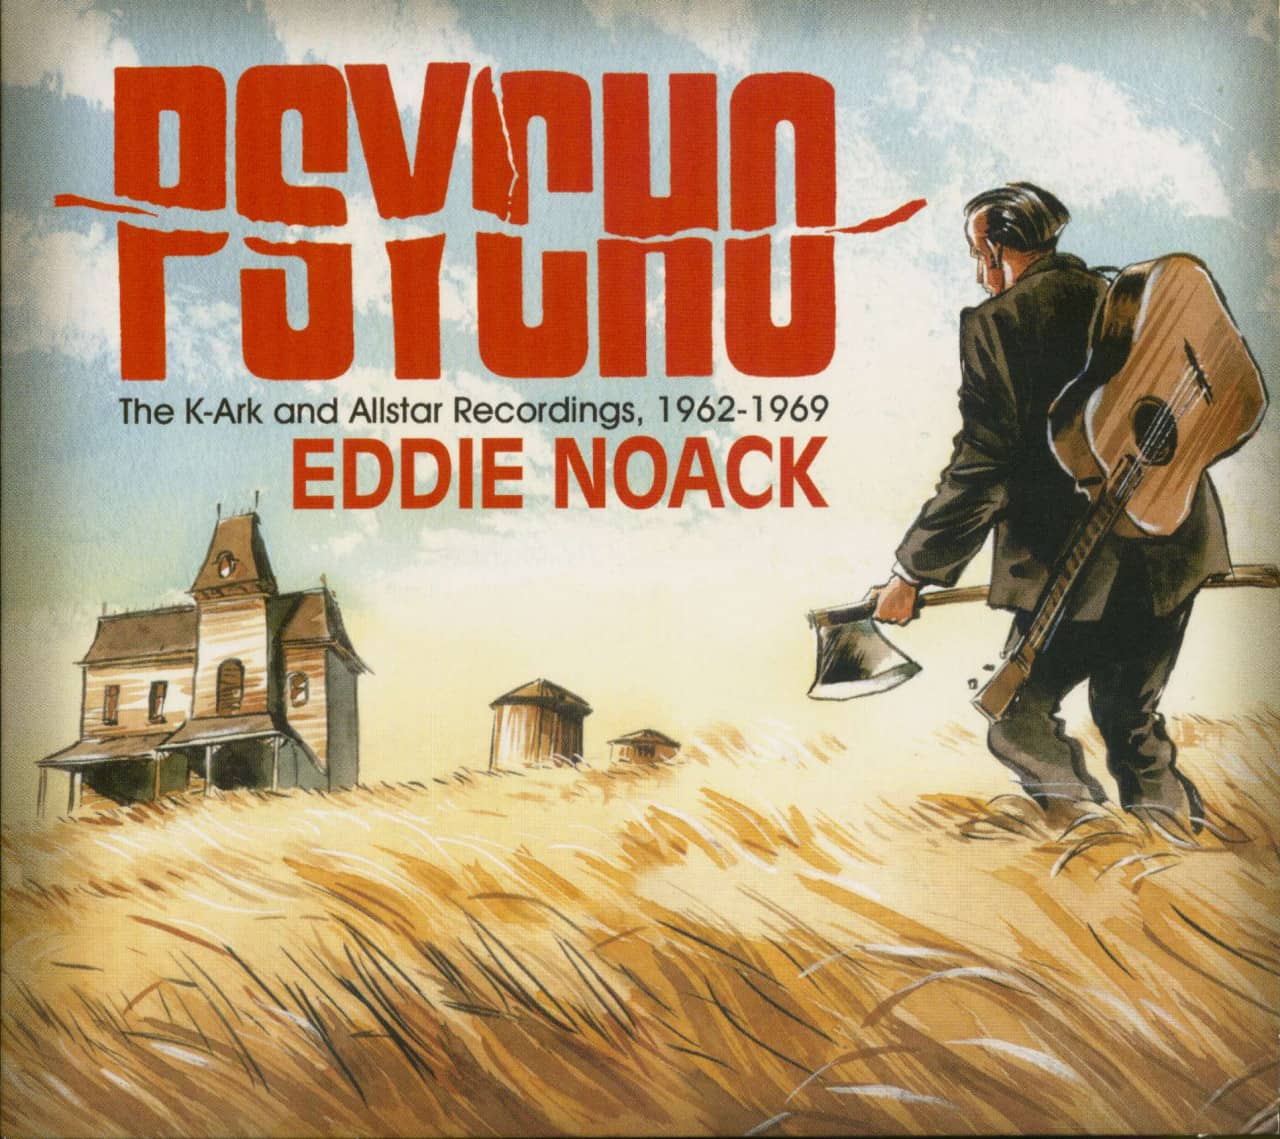 Eddie Noack - Psycho - The K-Ark and Allstar Recordings 1962-69 (CD)